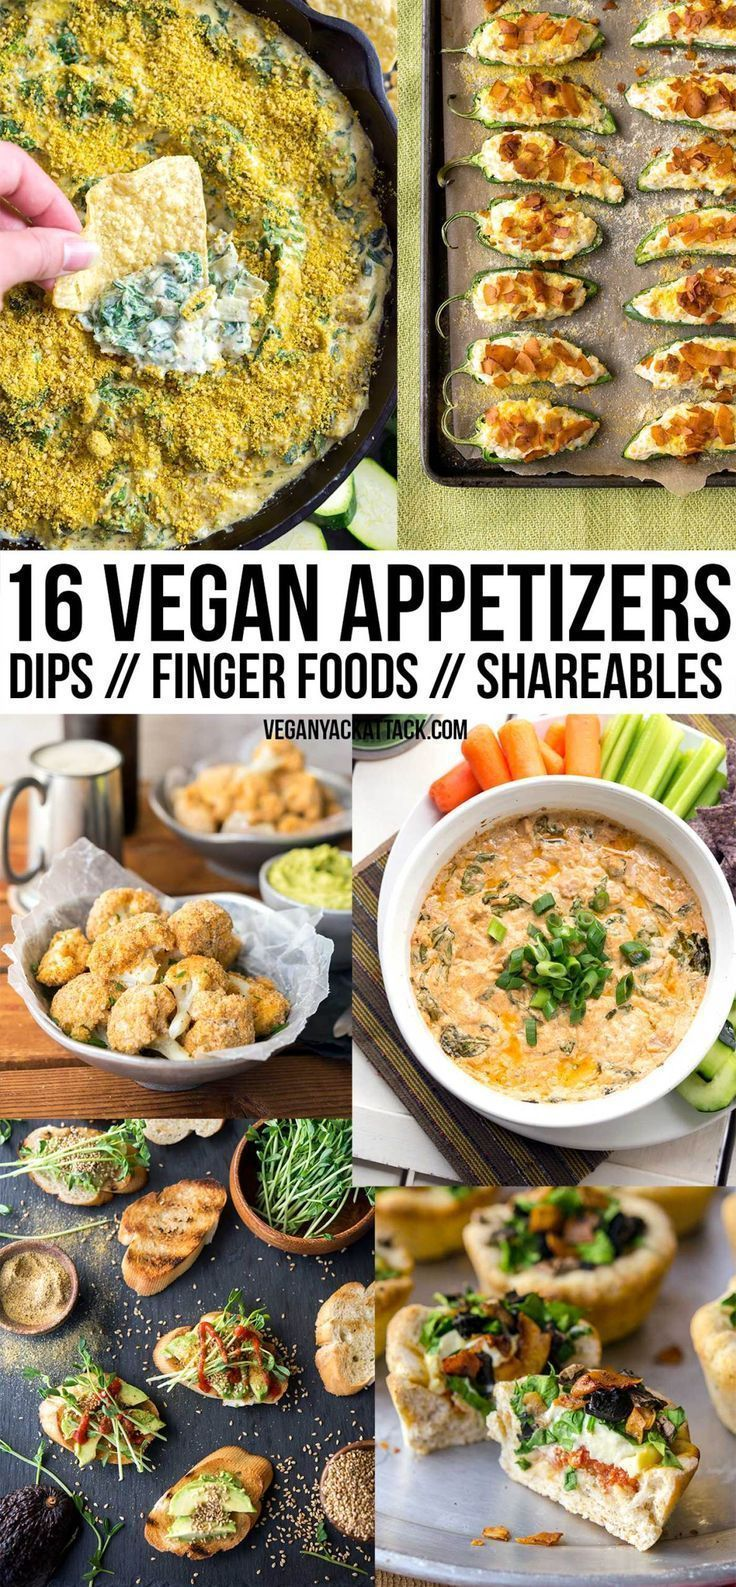 16 Fun Vegan Appetizers - Dips, Bites, and Shareables!